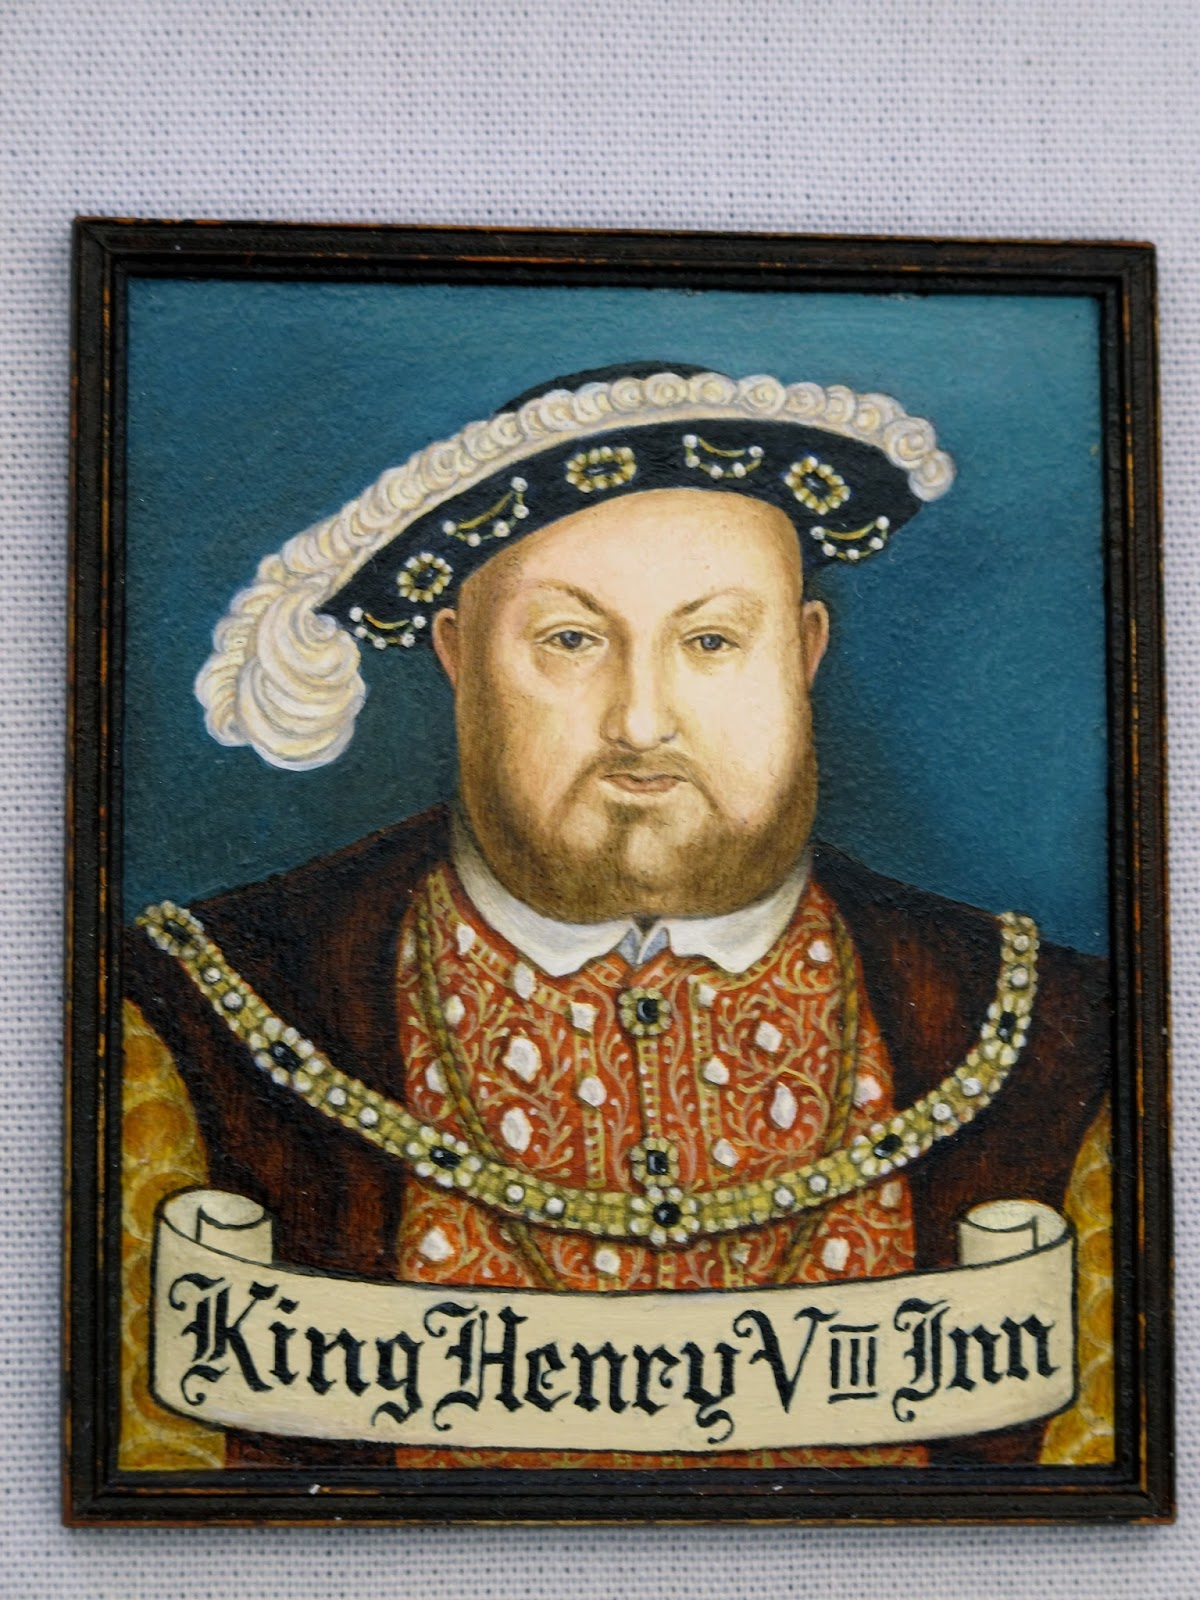 king henry viii essay Immediately download the king henry viii summary, chapter-by-chapter analysis, book notes, essays, quotes, character descriptions, lesson plans, and more - everything you need for studying or teaching king henry viii.